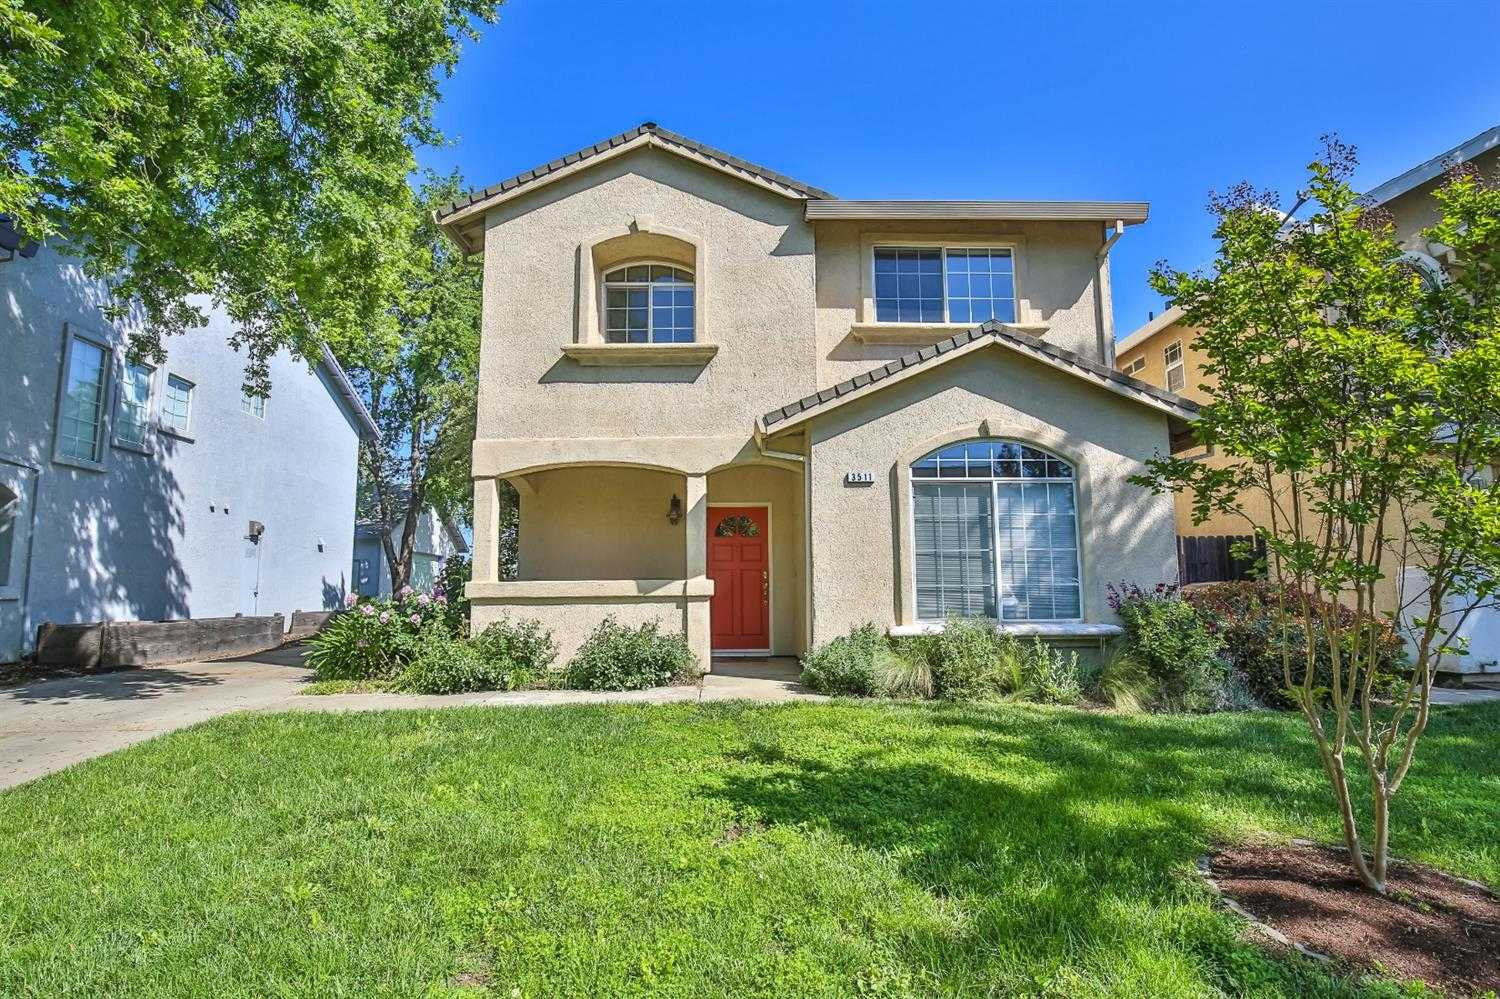 $610,000 - 3Br/3Ba -  for Sale in Willow Creek, Davis